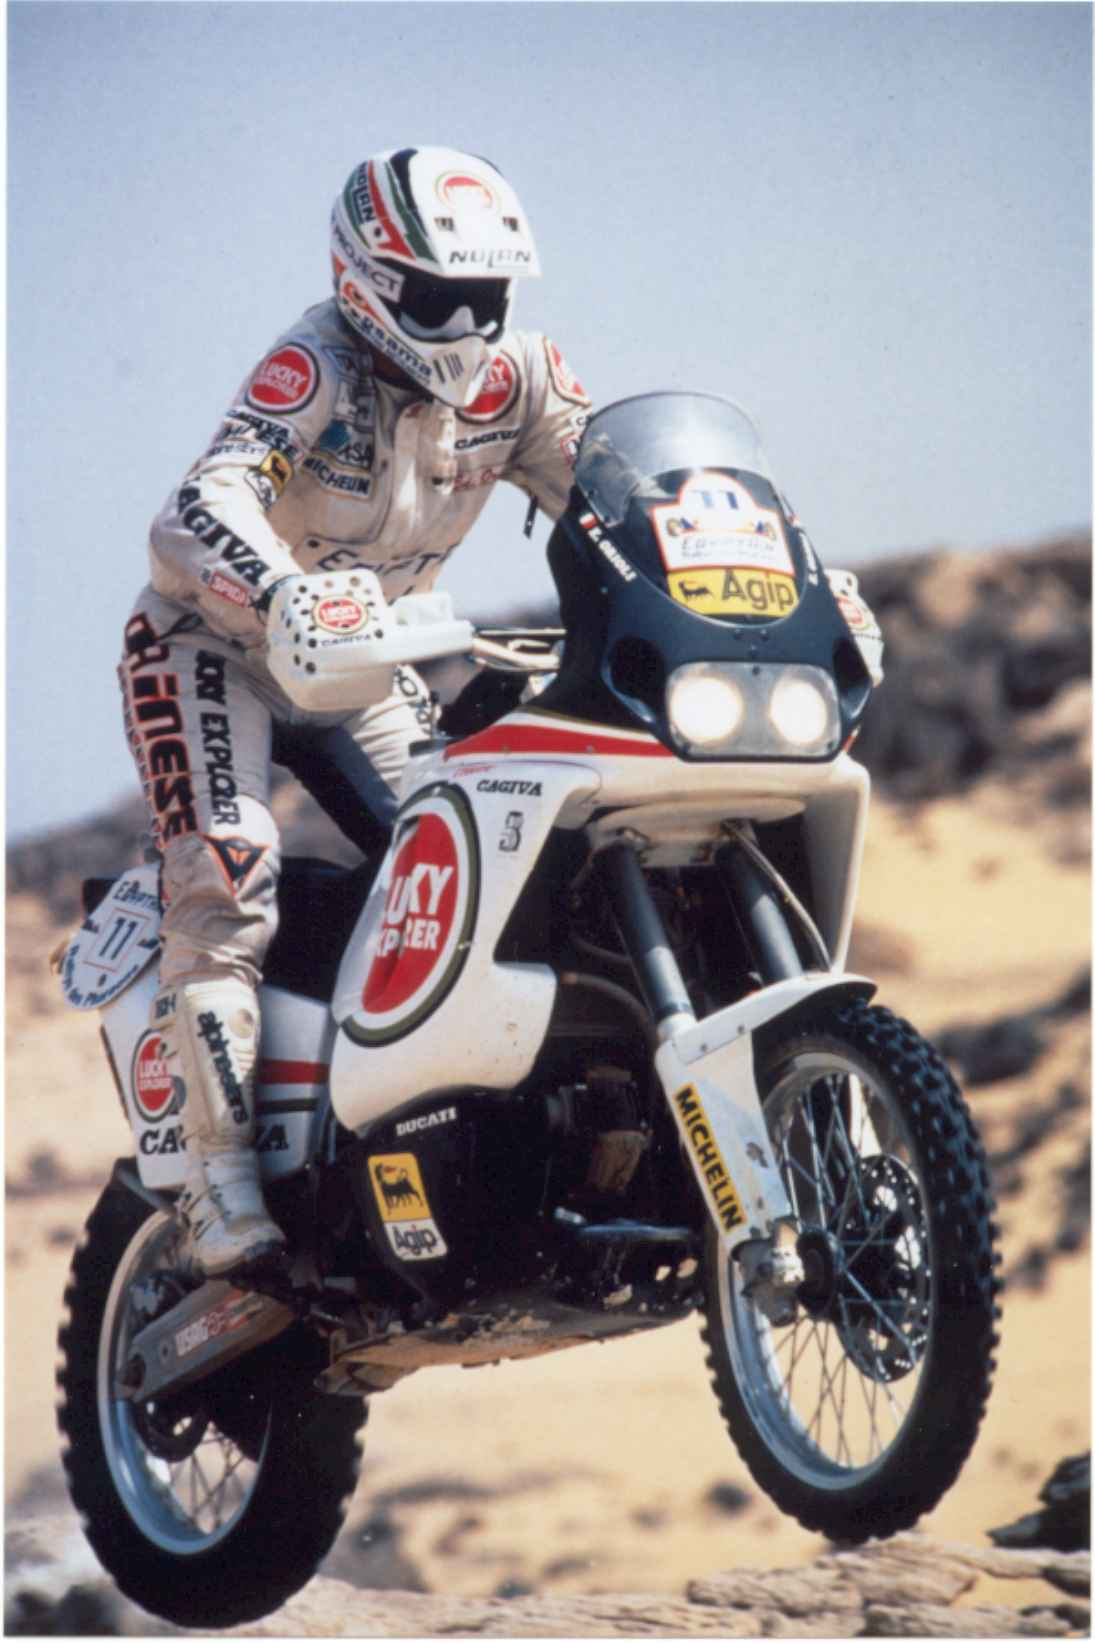 Cagiva Elefant 900 IE 1990 images #68845